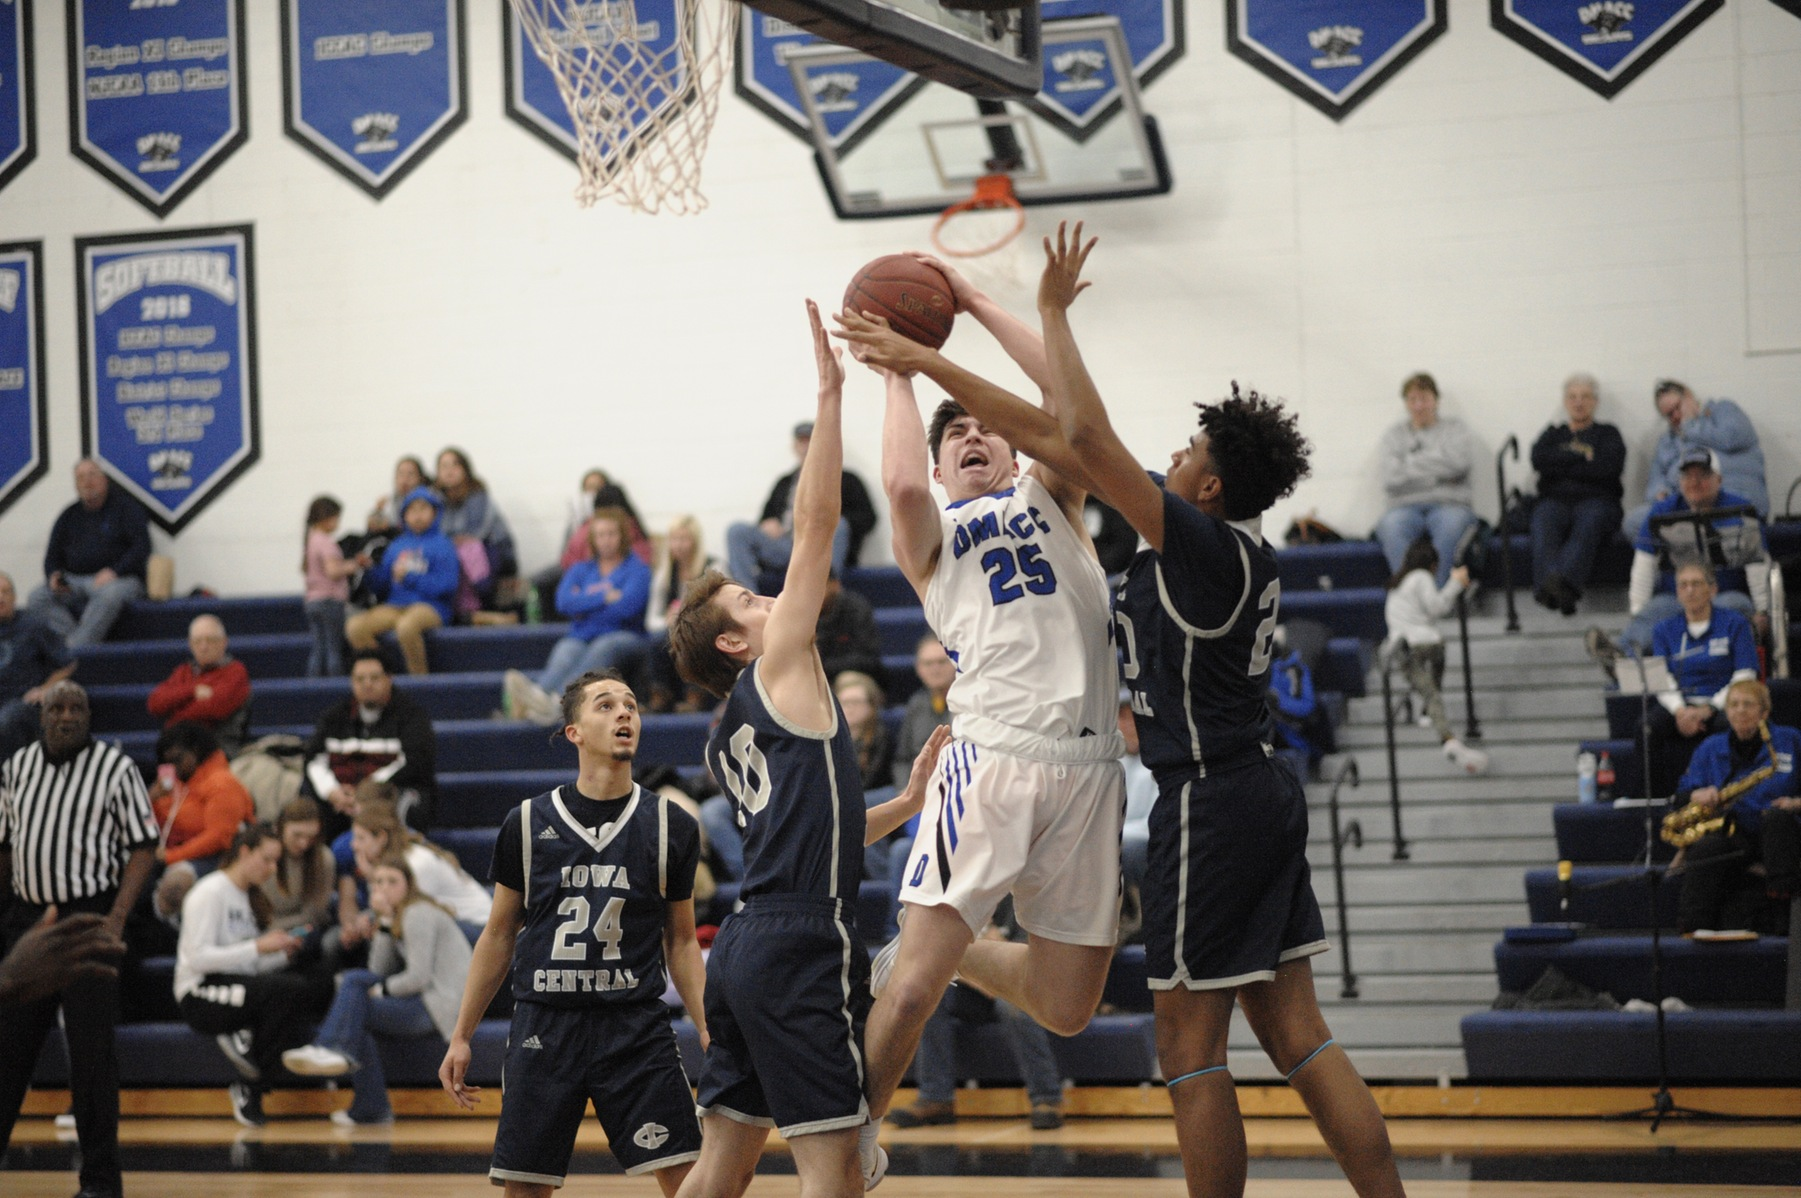 DMACC men's basketball team closes regular season with win